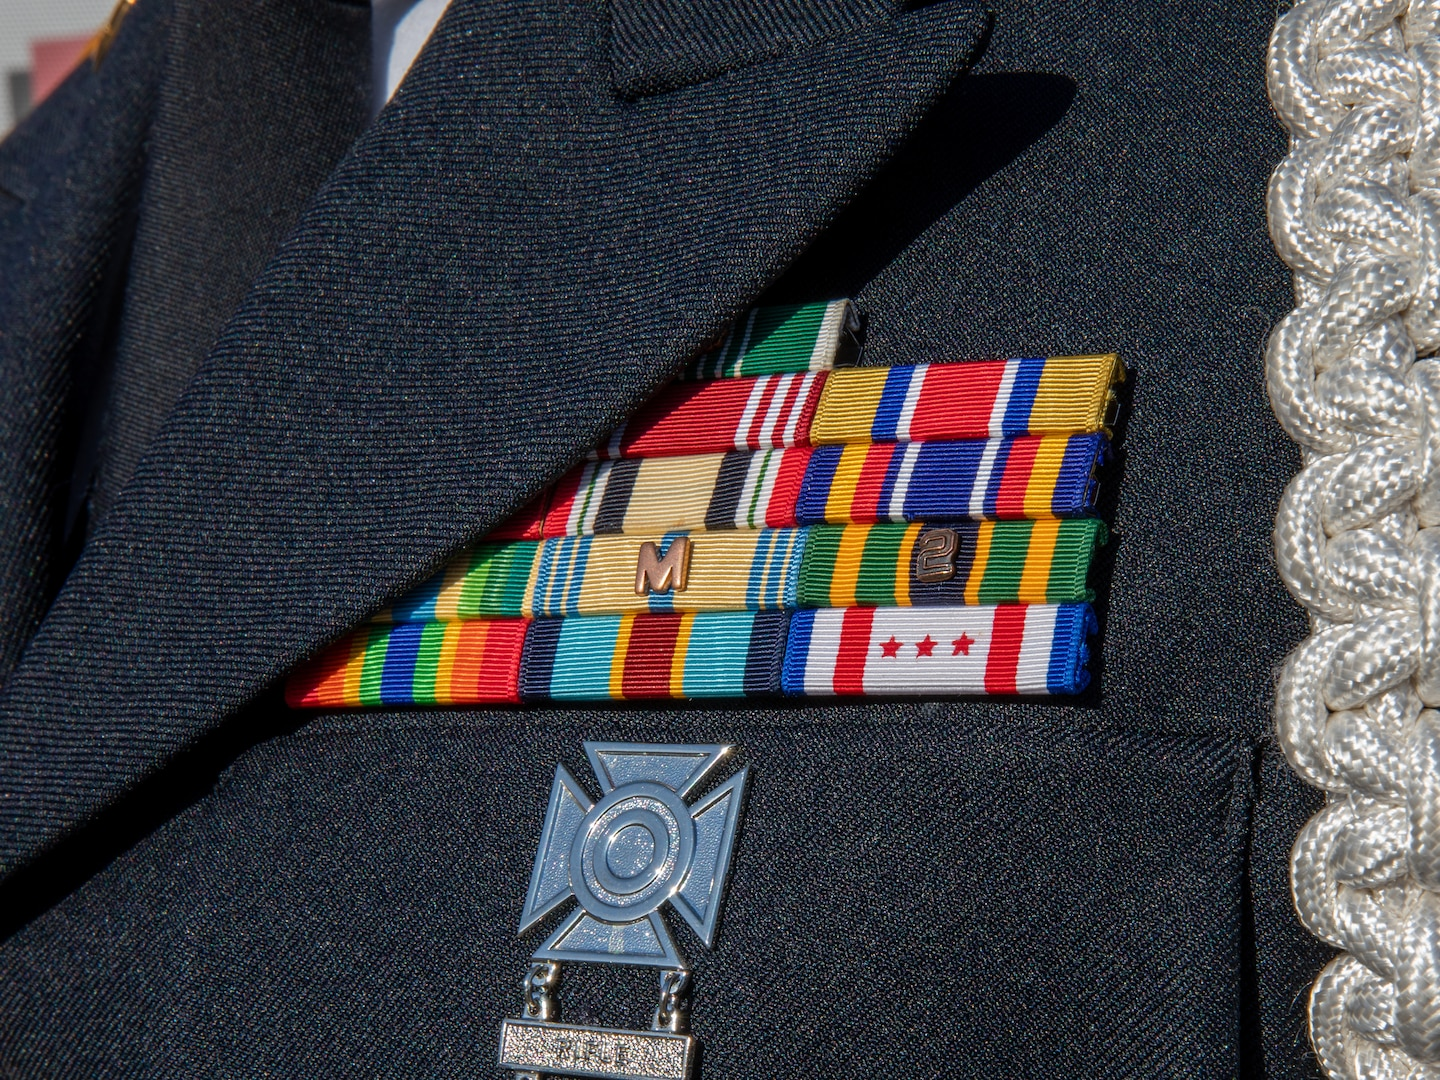 Military awards worn by a District of Columbia Army National Guard Soldier in Washington, D.C., March 10, 2021, include the D.C. National Guard Presidential Inauguration Support Ribbon on the bottom right. The ribbon is authorized for award to National Guard members from any state, territory or the District of Columbia who supported the 59th presidential inauguration on Title 32 orders.